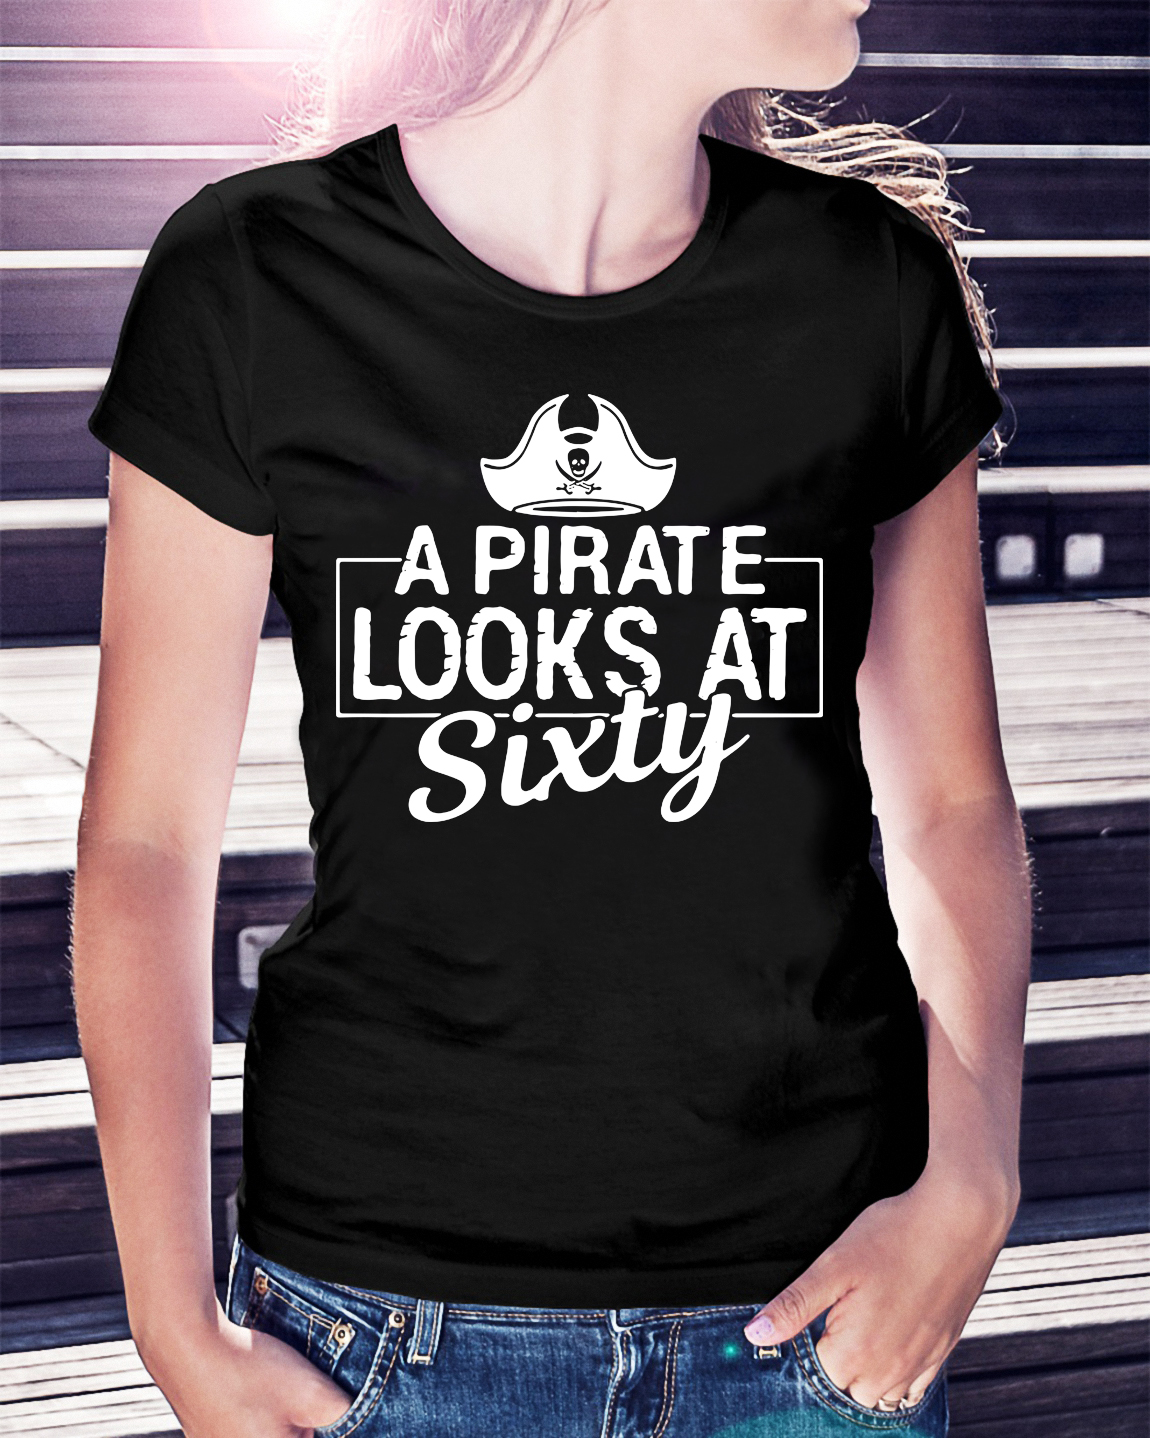 A pirate looks at sixty Ladies Tee